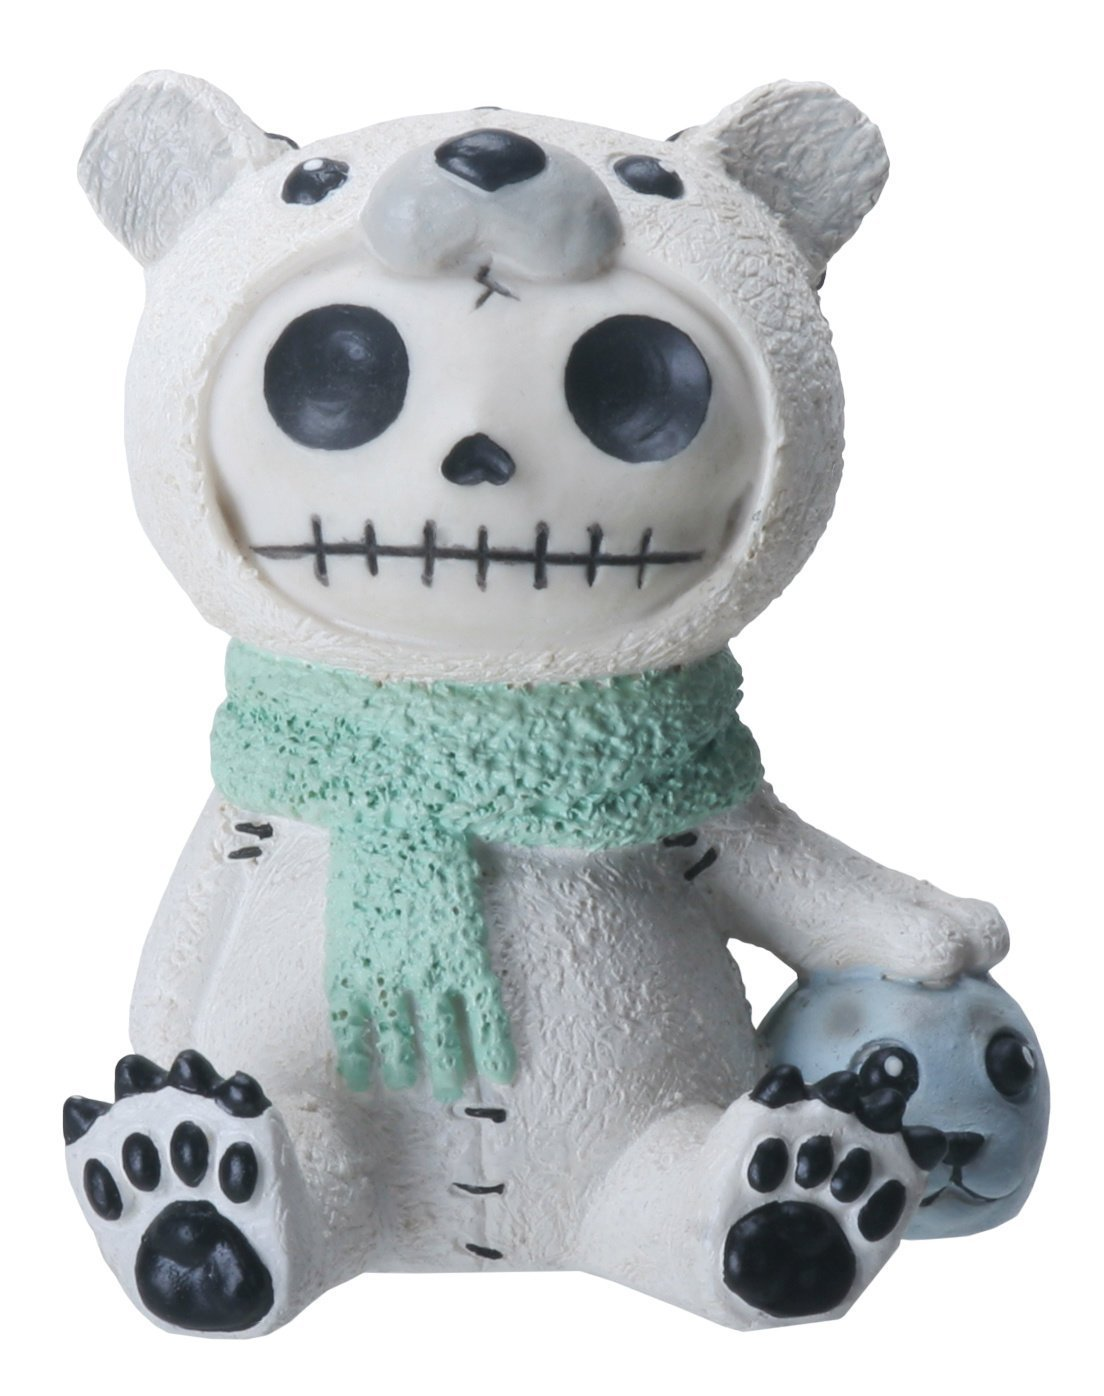 SUMMIT COLLECTION Furrybones Chilton Signature Skeleton in Polar Bear Costume with Baby Seal